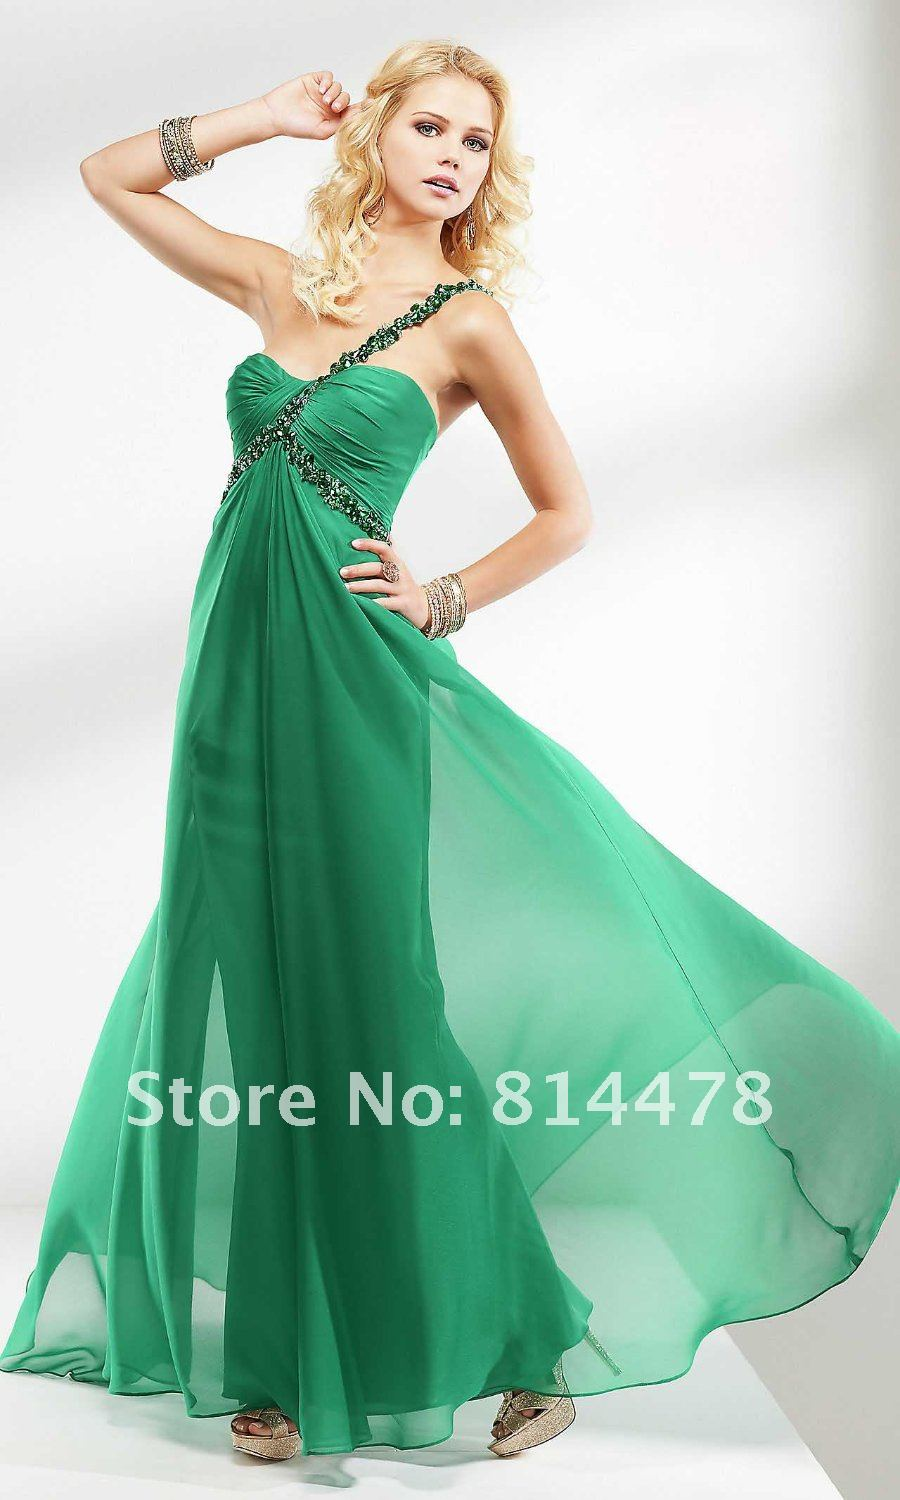 Free shipping cost fabulous chiffon beaded one shoulder prom dress ...